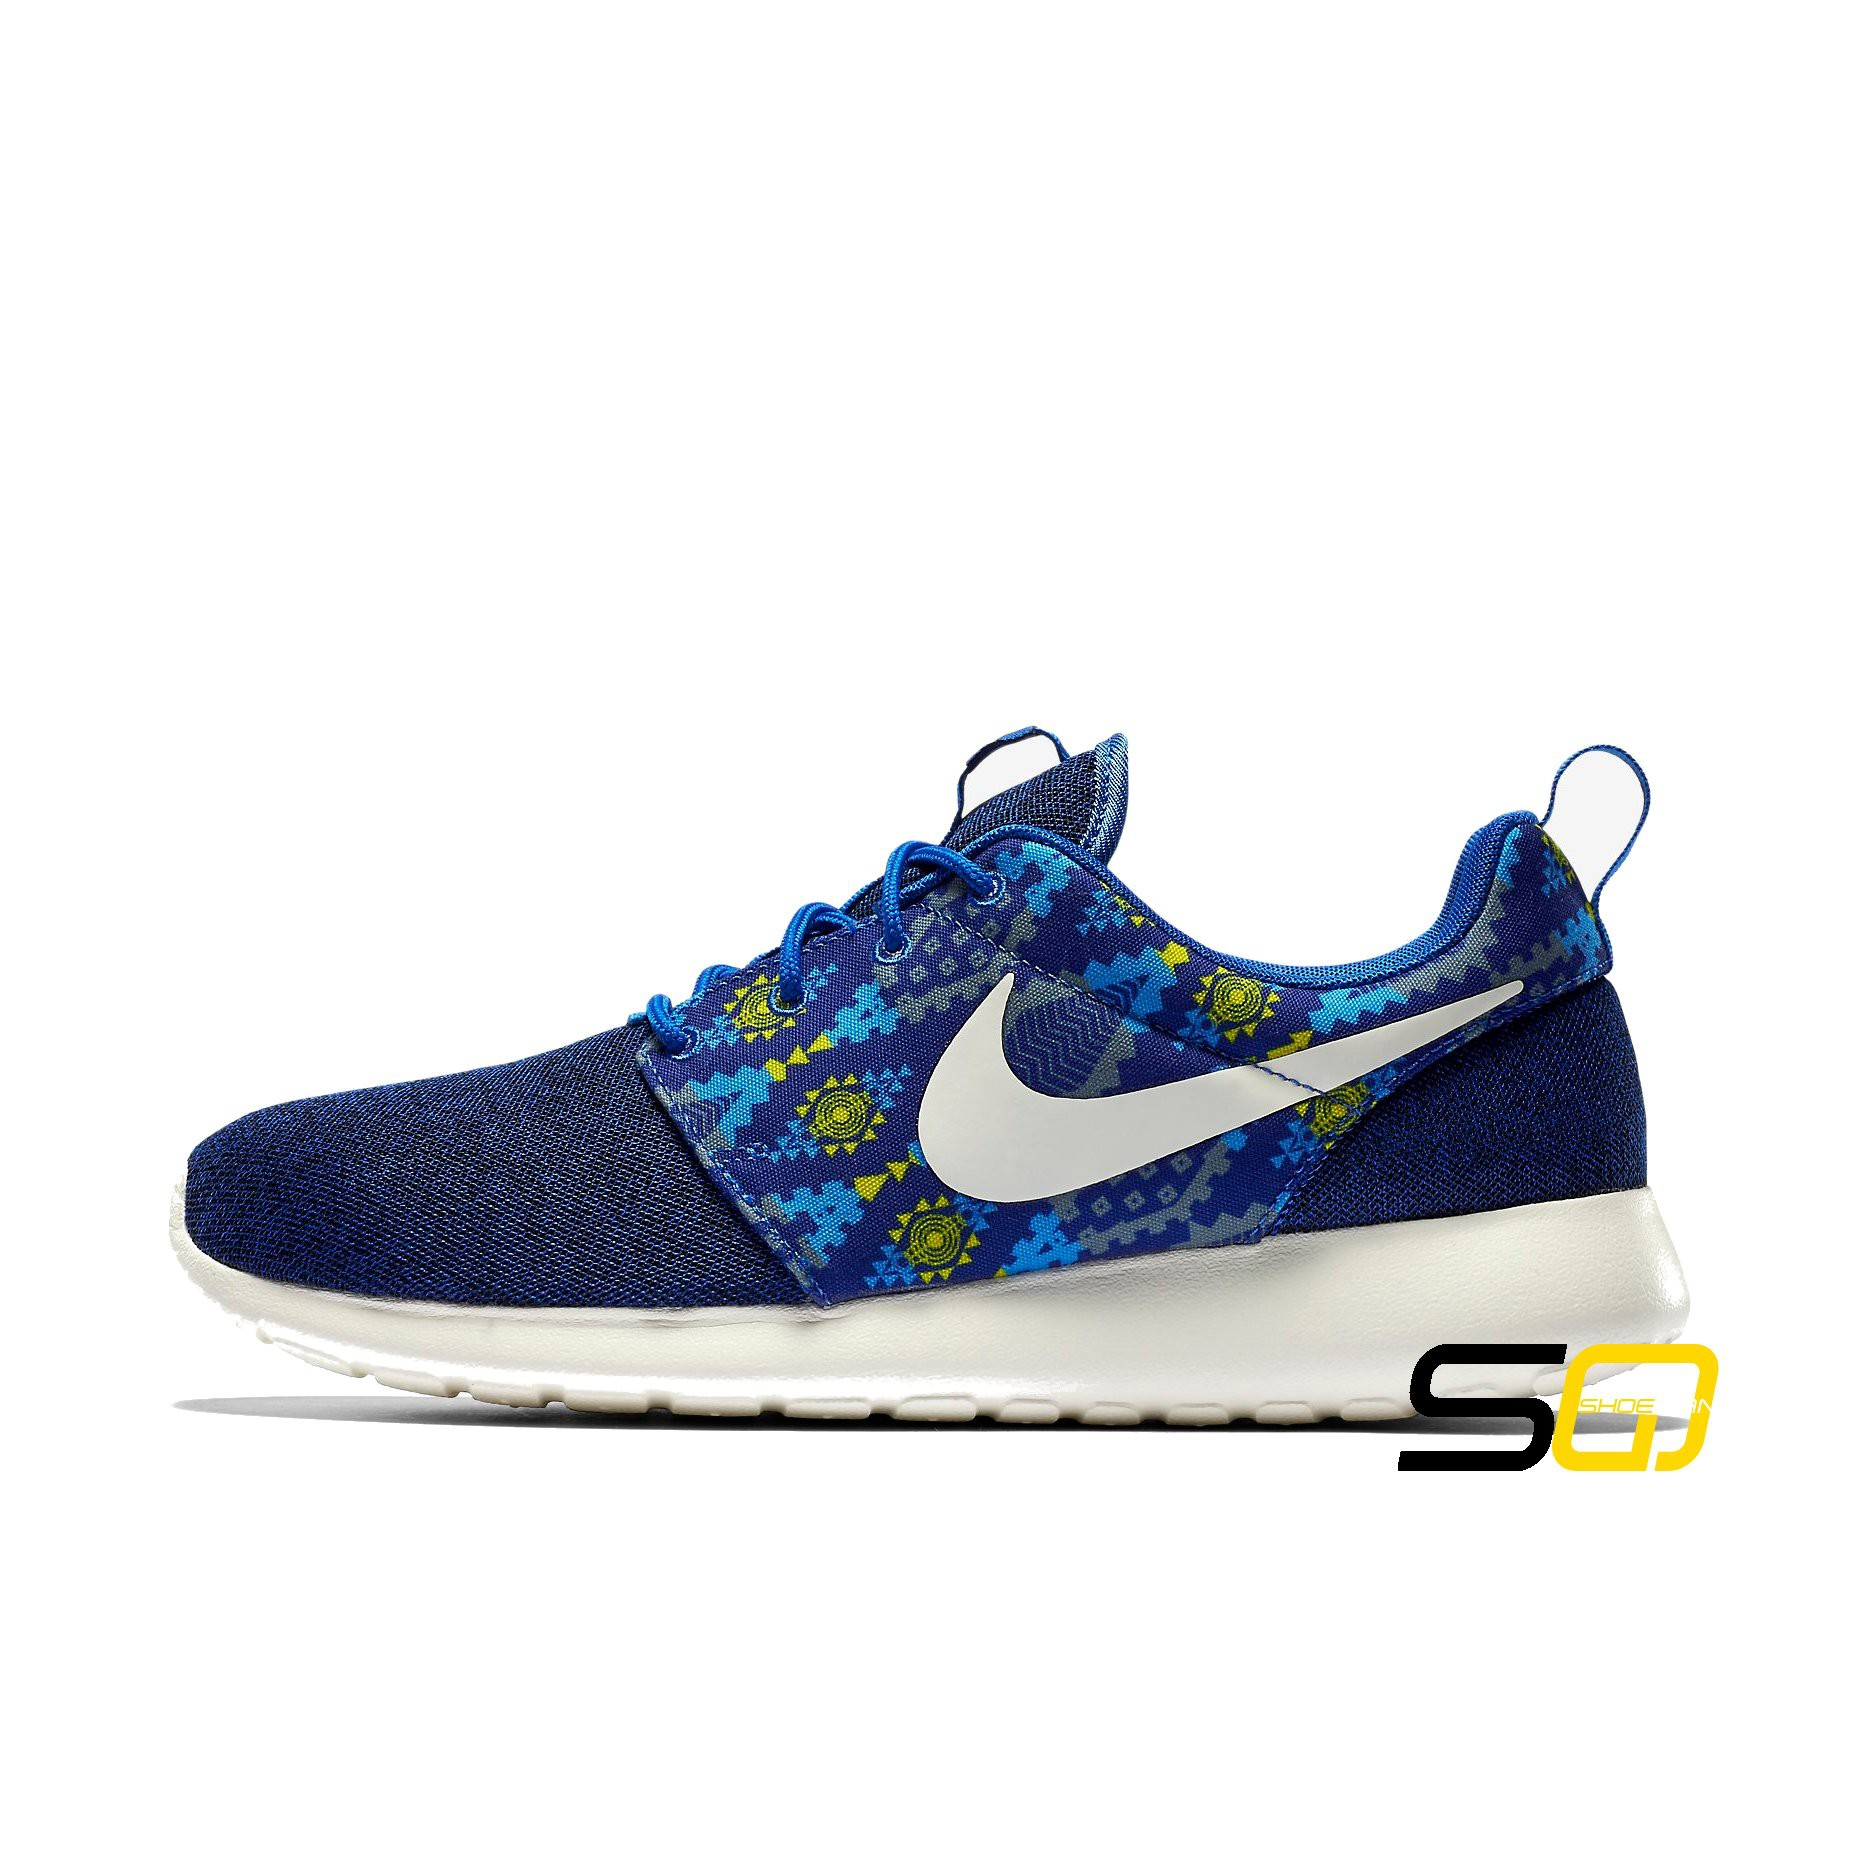 chaussures hommes nike roshe one ref 655206 410 running shoemaniaq. Black Bedroom Furniture Sets. Home Design Ideas